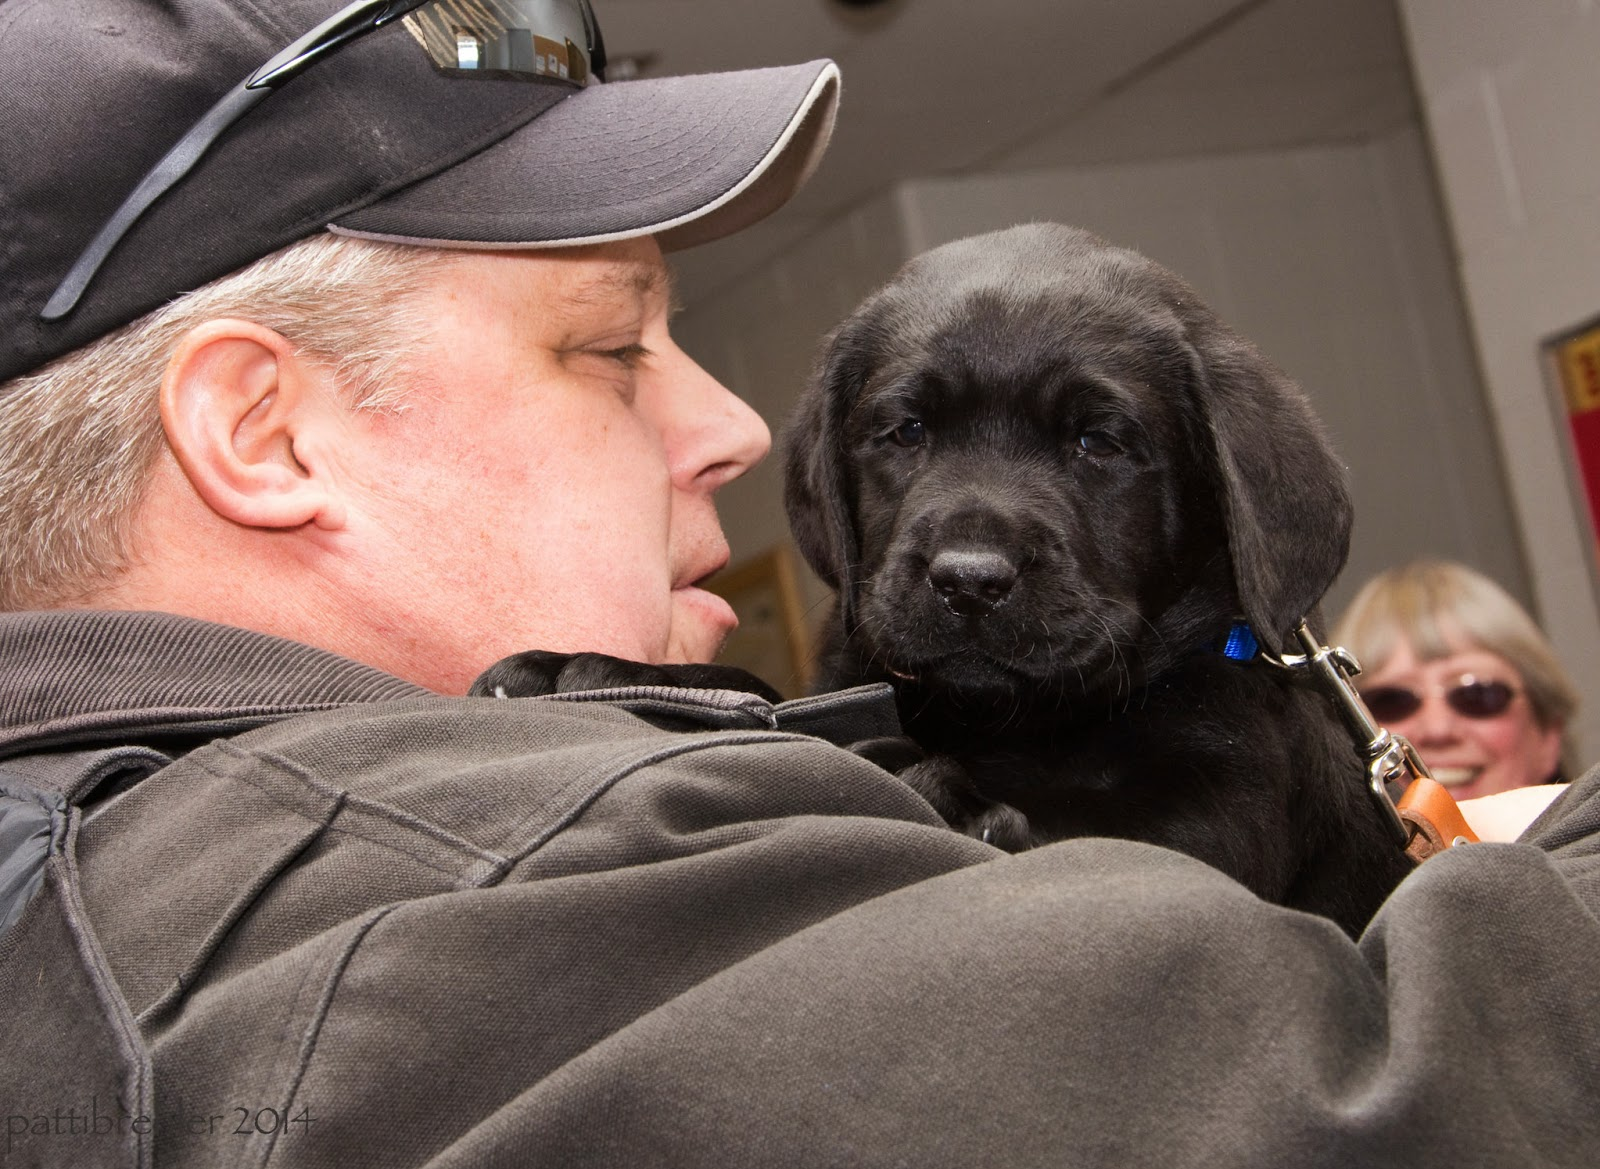 Now the black lab puppy is being held by a different man. The man is facing to the right, he is wearing a black jacket and a black baseball cap with sunglasses resting on the brim. The puppy is in his arms and is looking right at the camera. In the background is the smiling face of a woman with white hair and sunglasses.